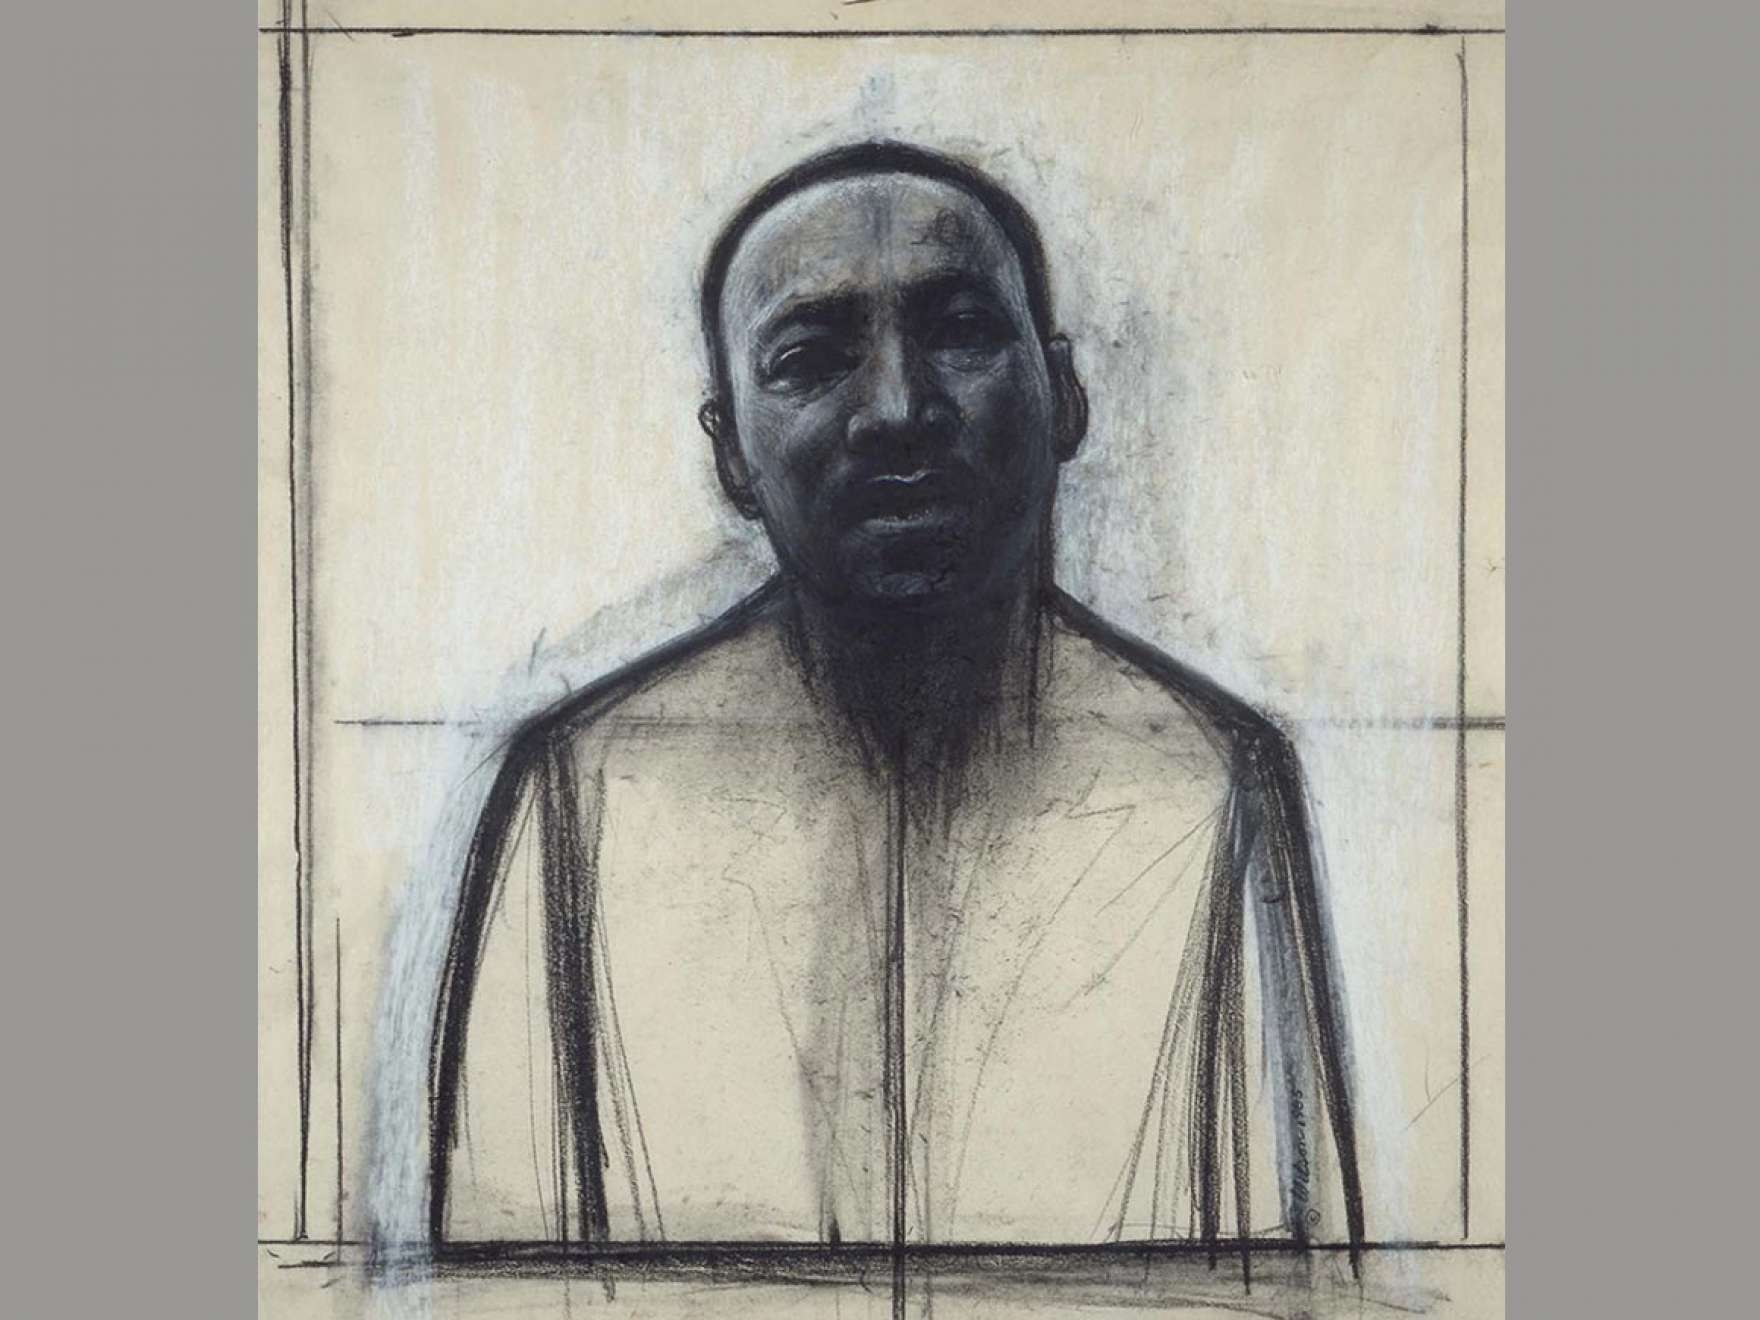 John Wilson's drawing, Dr. Martin Luther King, Jr.